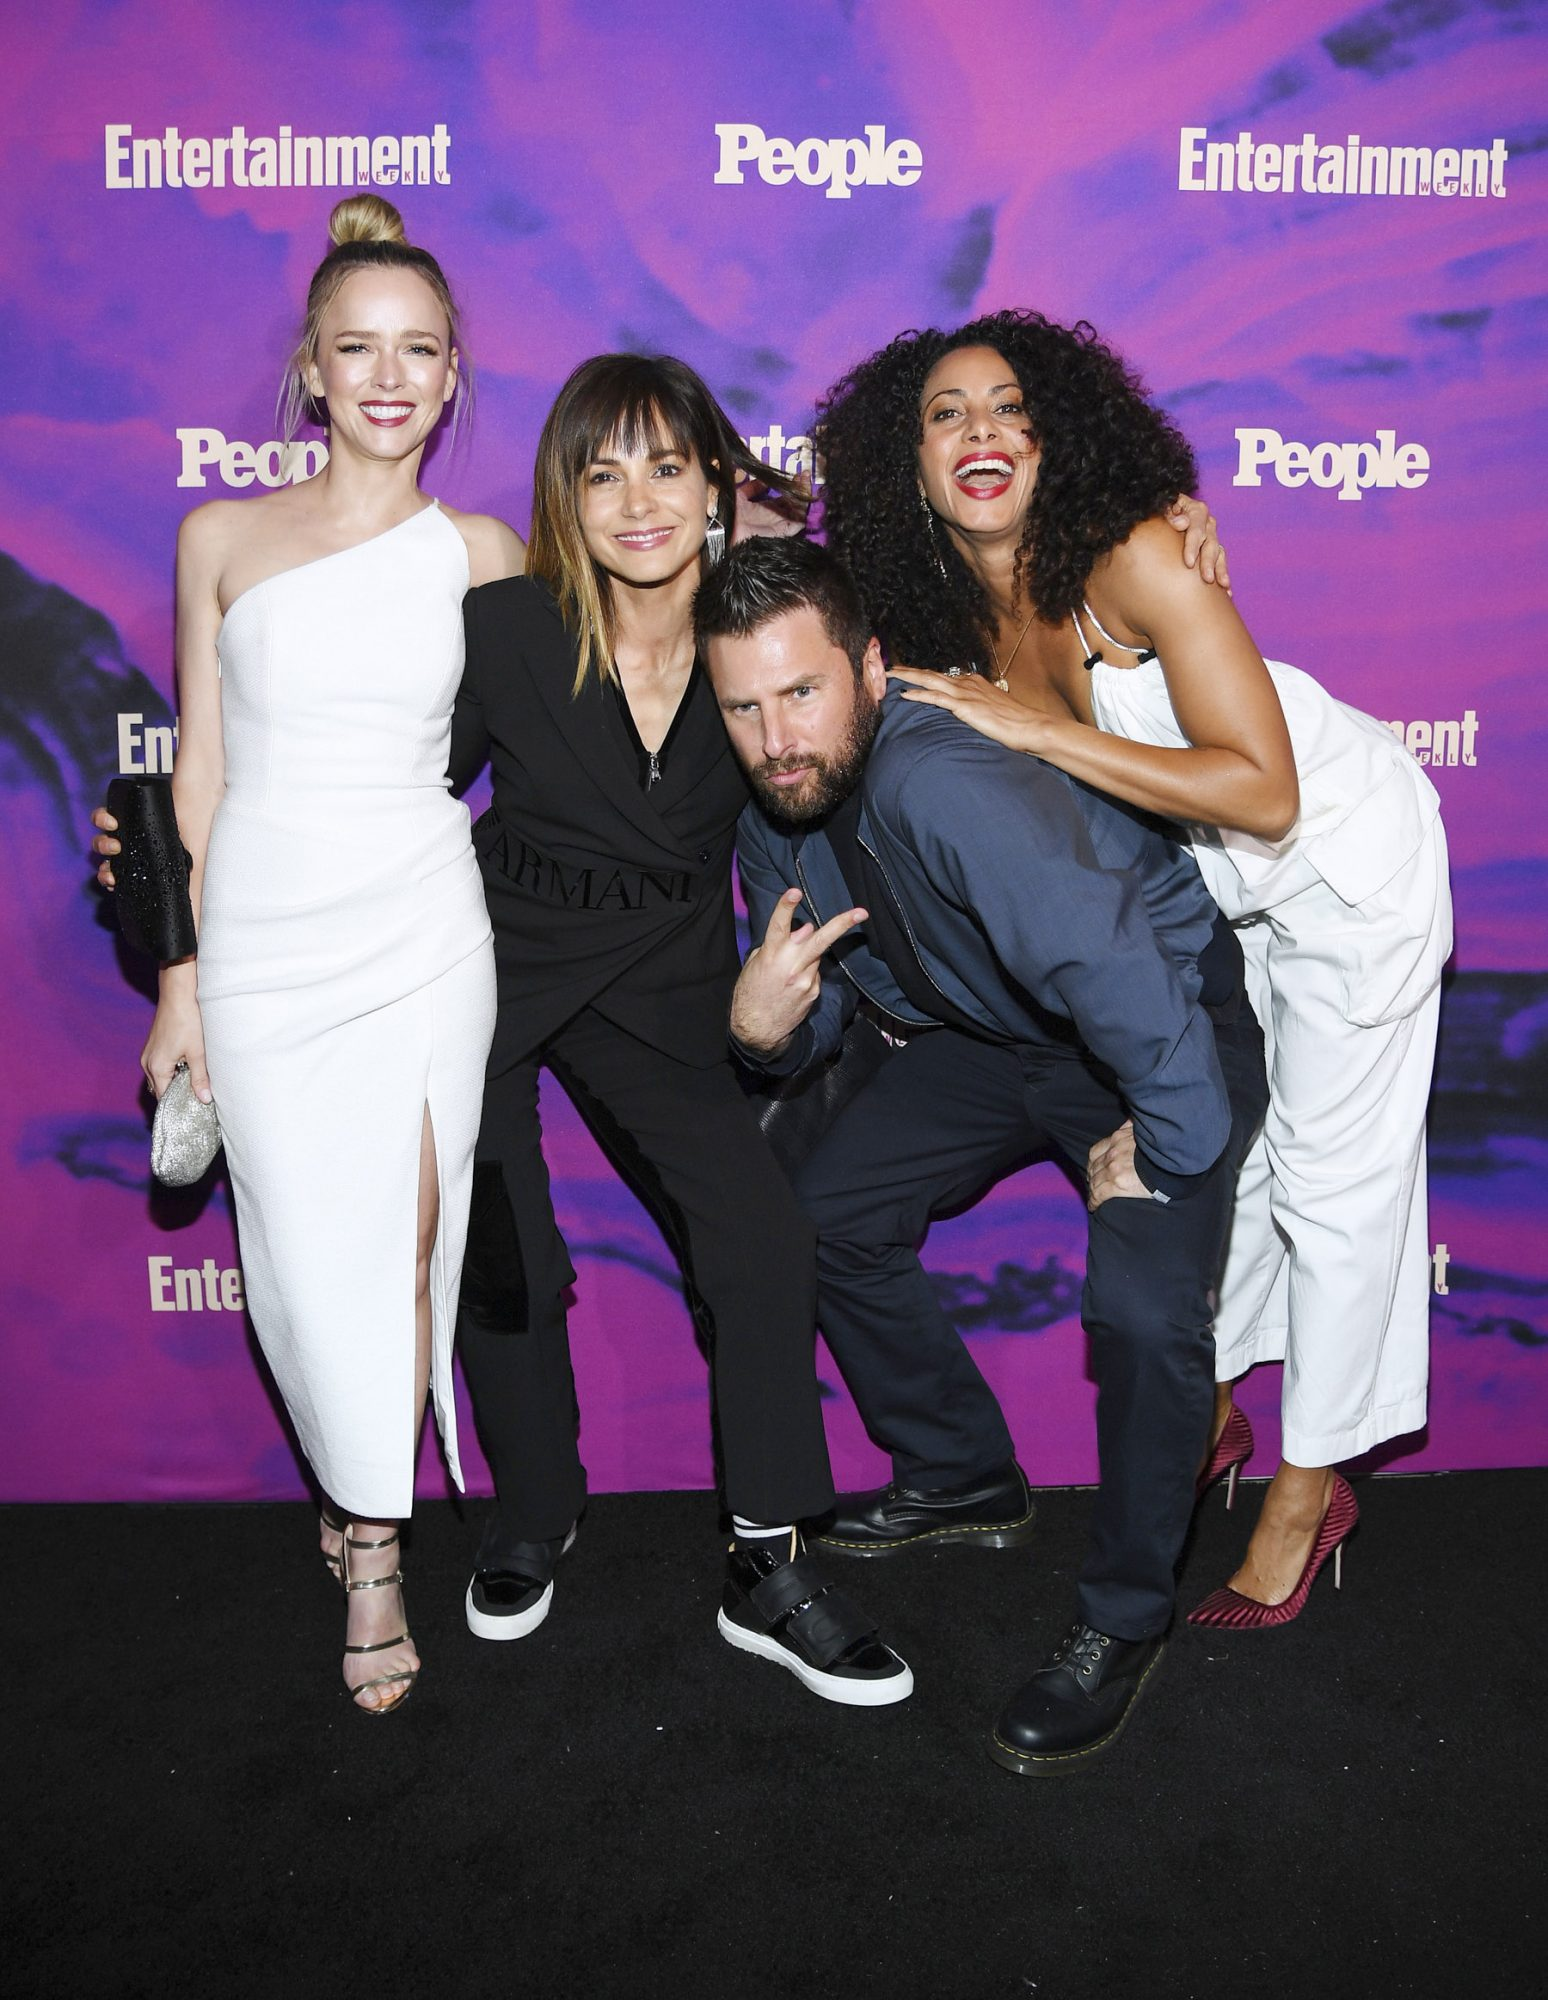 NEW YORK, NEW YORK - MAY 13: Allison Miller, Stephanie Szostak, James Roday and Christina Moses of A Million Little Things attends the Entertainment Weekly & PEOPLE New York Upfronts Party on May 13, 2019 in New York City. (Photo by Dimitrios Kambouris/Getty Images for Entertainment Weekly & PEOPLE)